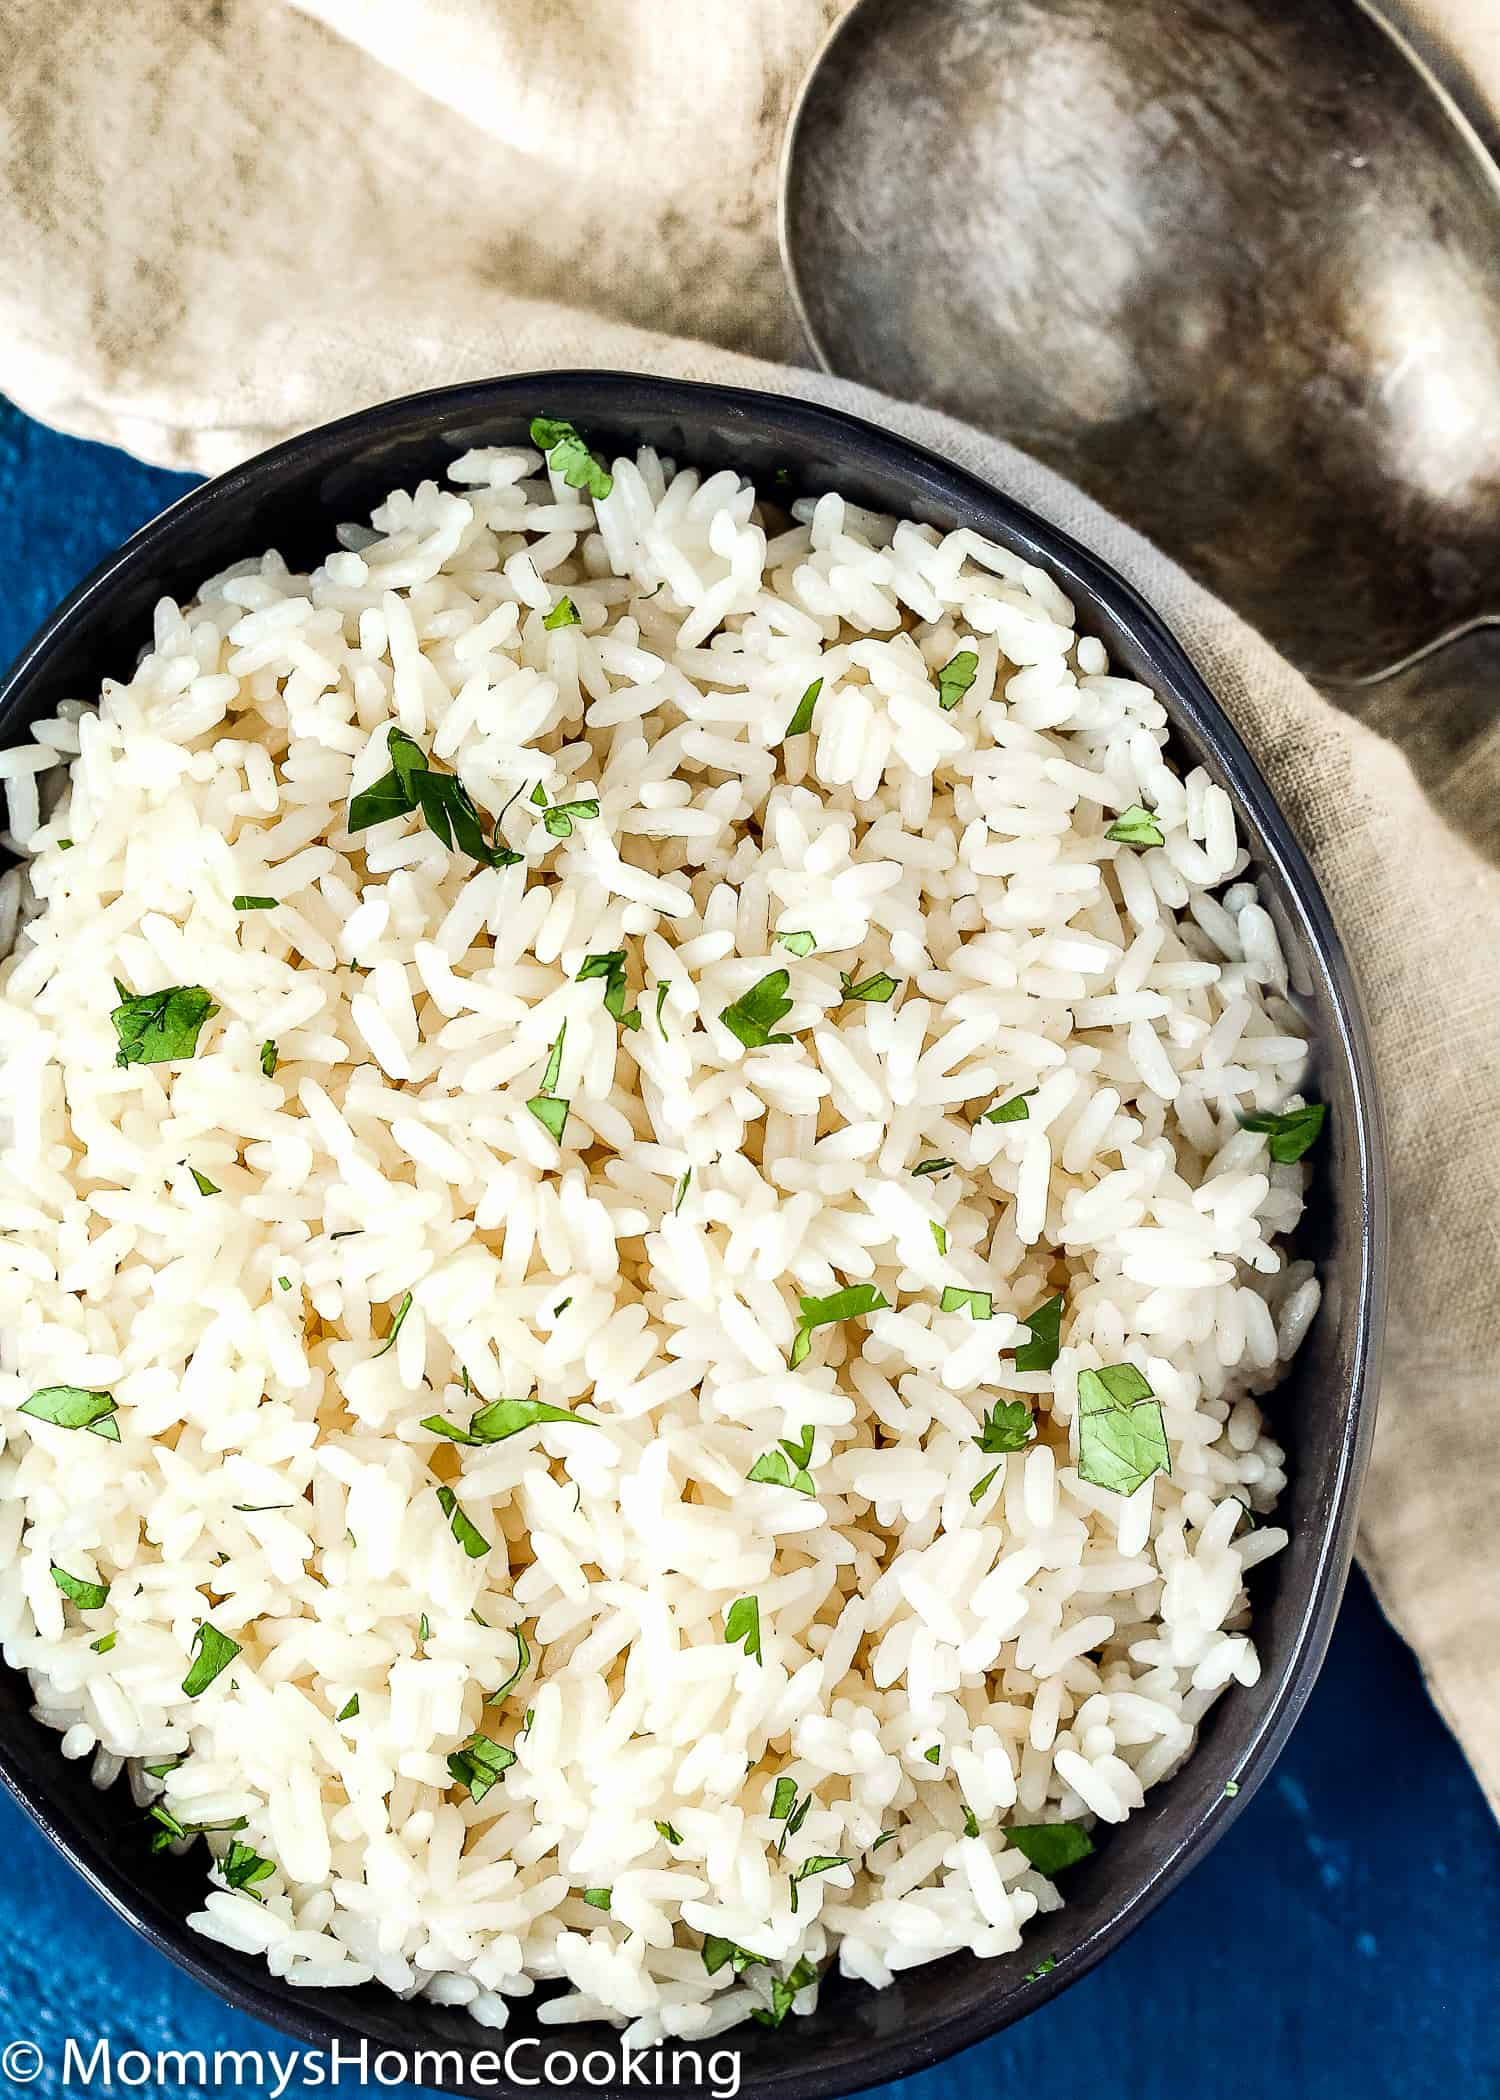 This Instant Pot Fluffy Rice is tender, light and flavorful every time! Keep reading to learn my fool-proof secret to cooking perfect rice in the Instant Pot. Ready in about 15 minutes. Guide to cook different kinds of rice in the Instant Pot is included.  https://mommyshomecooking.com